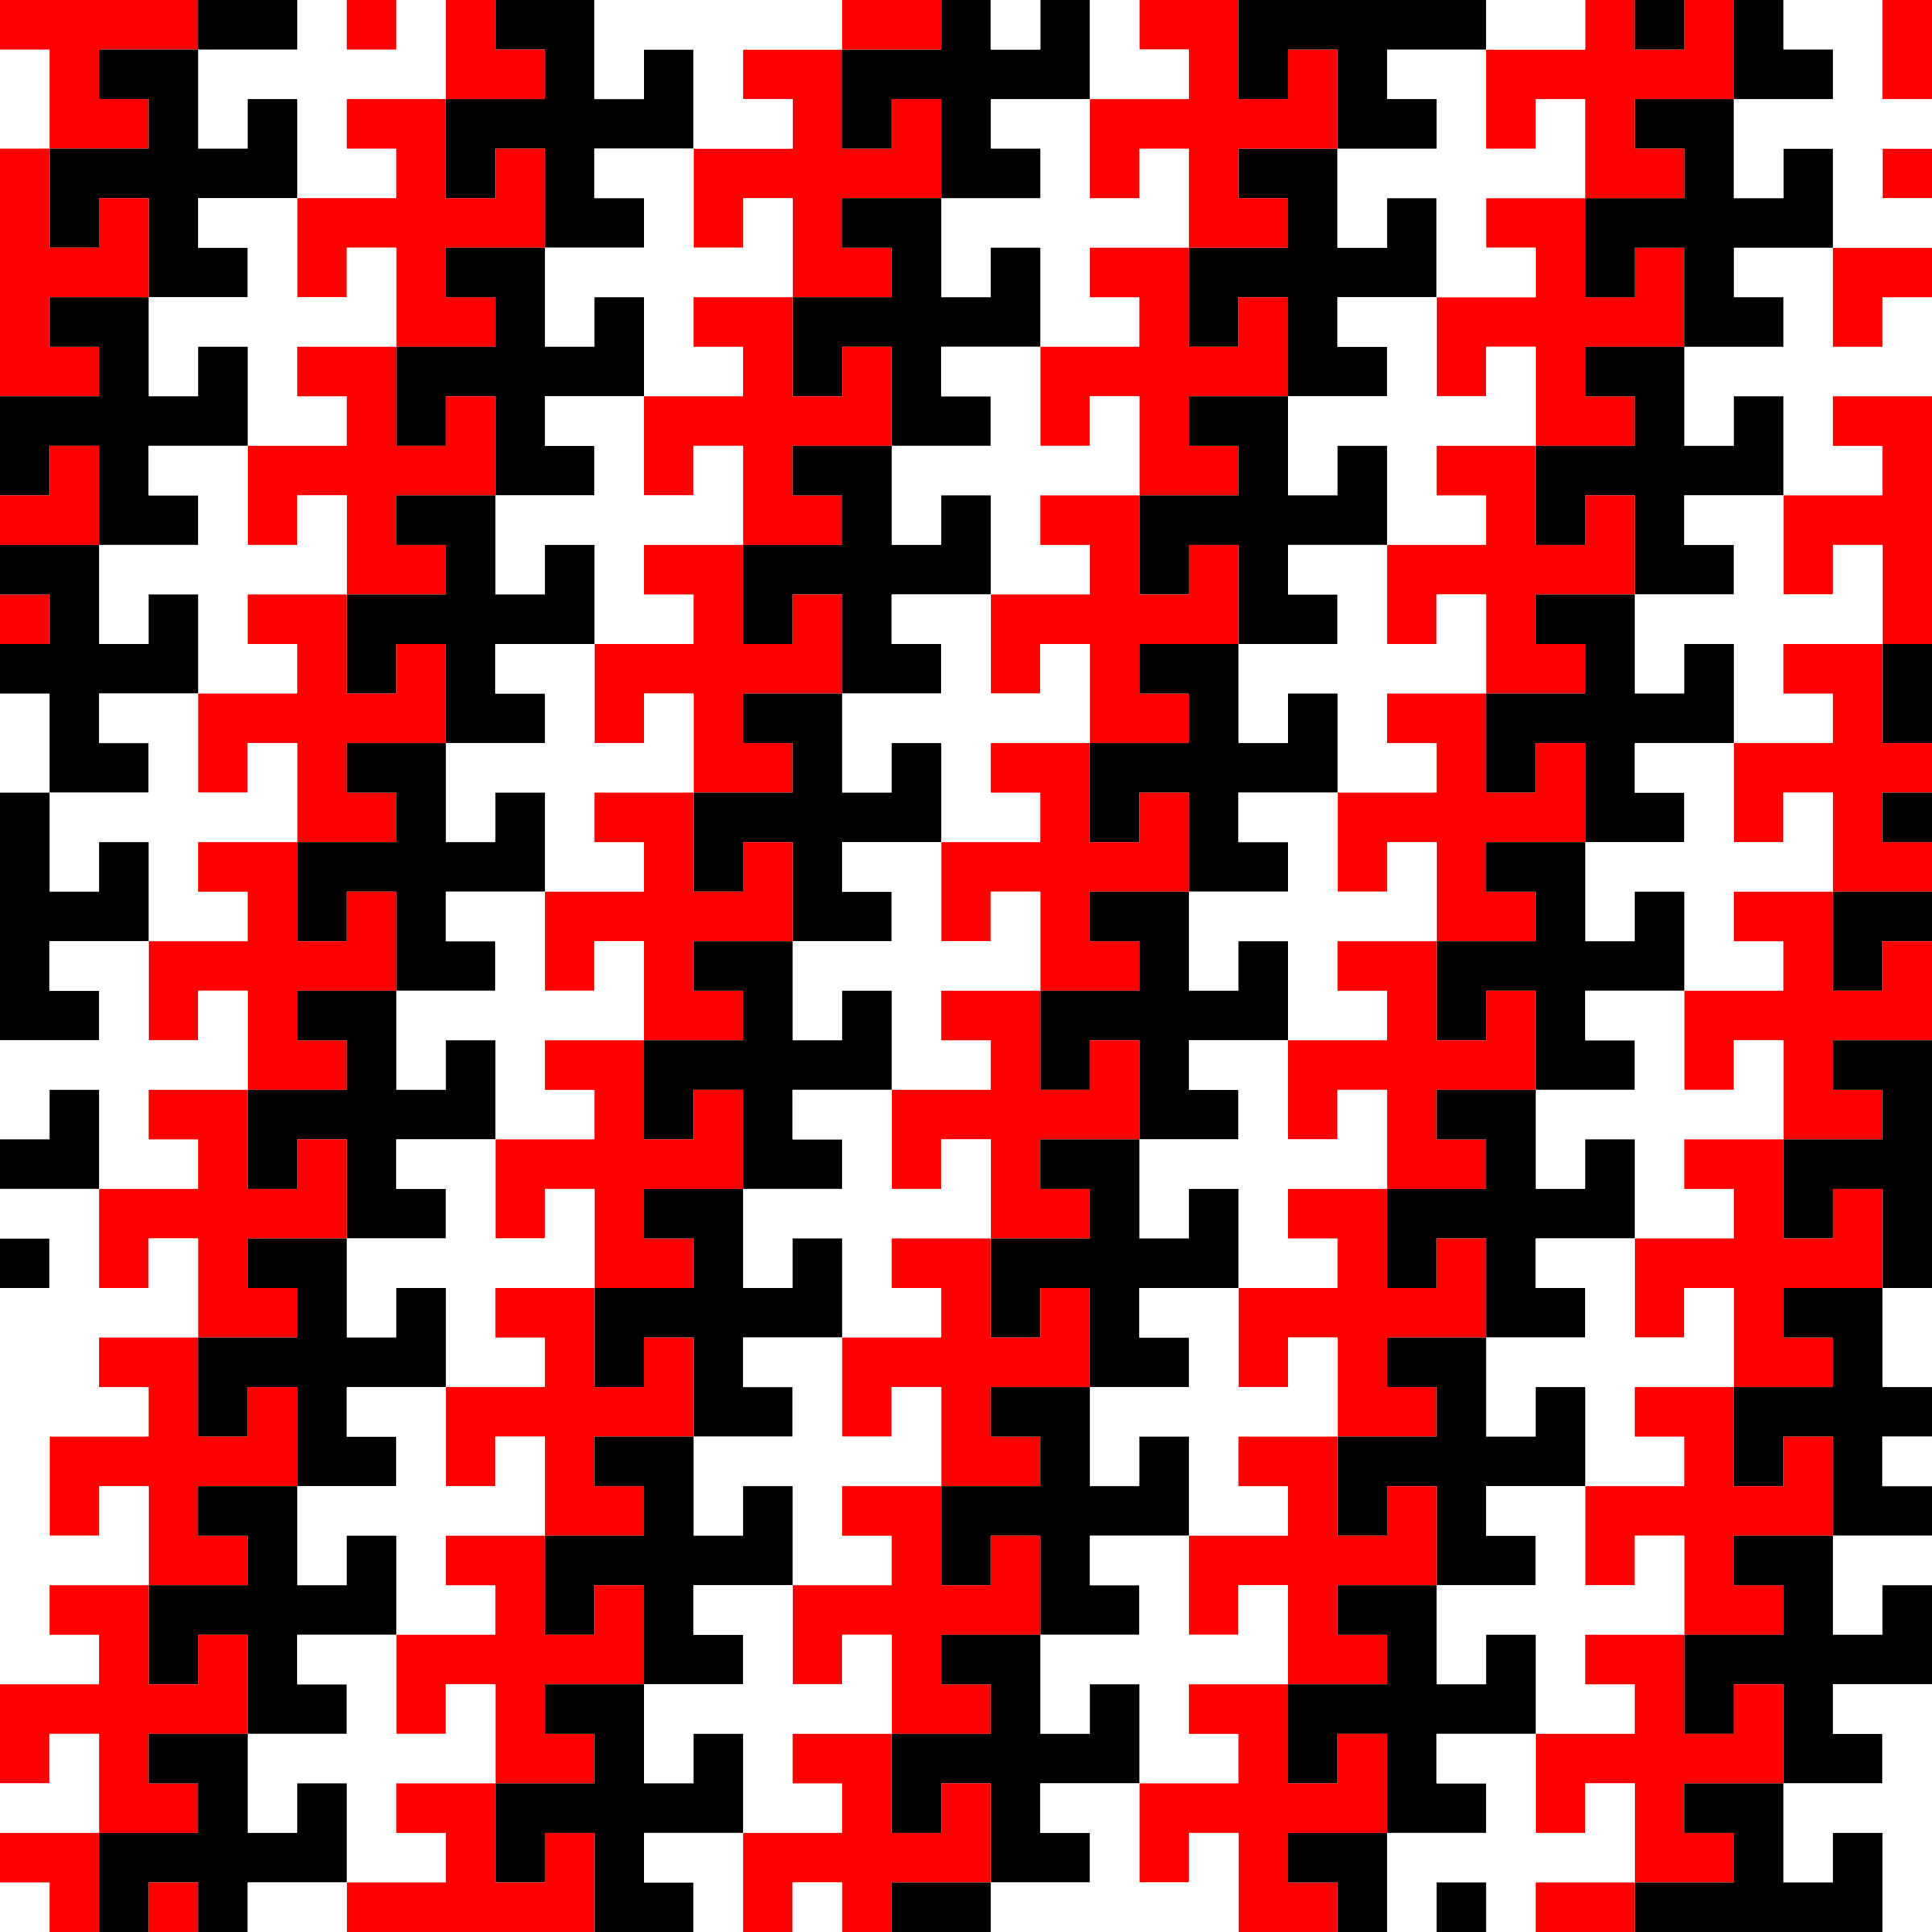 Swastika tessellation 1 (three-colour) by Firkin